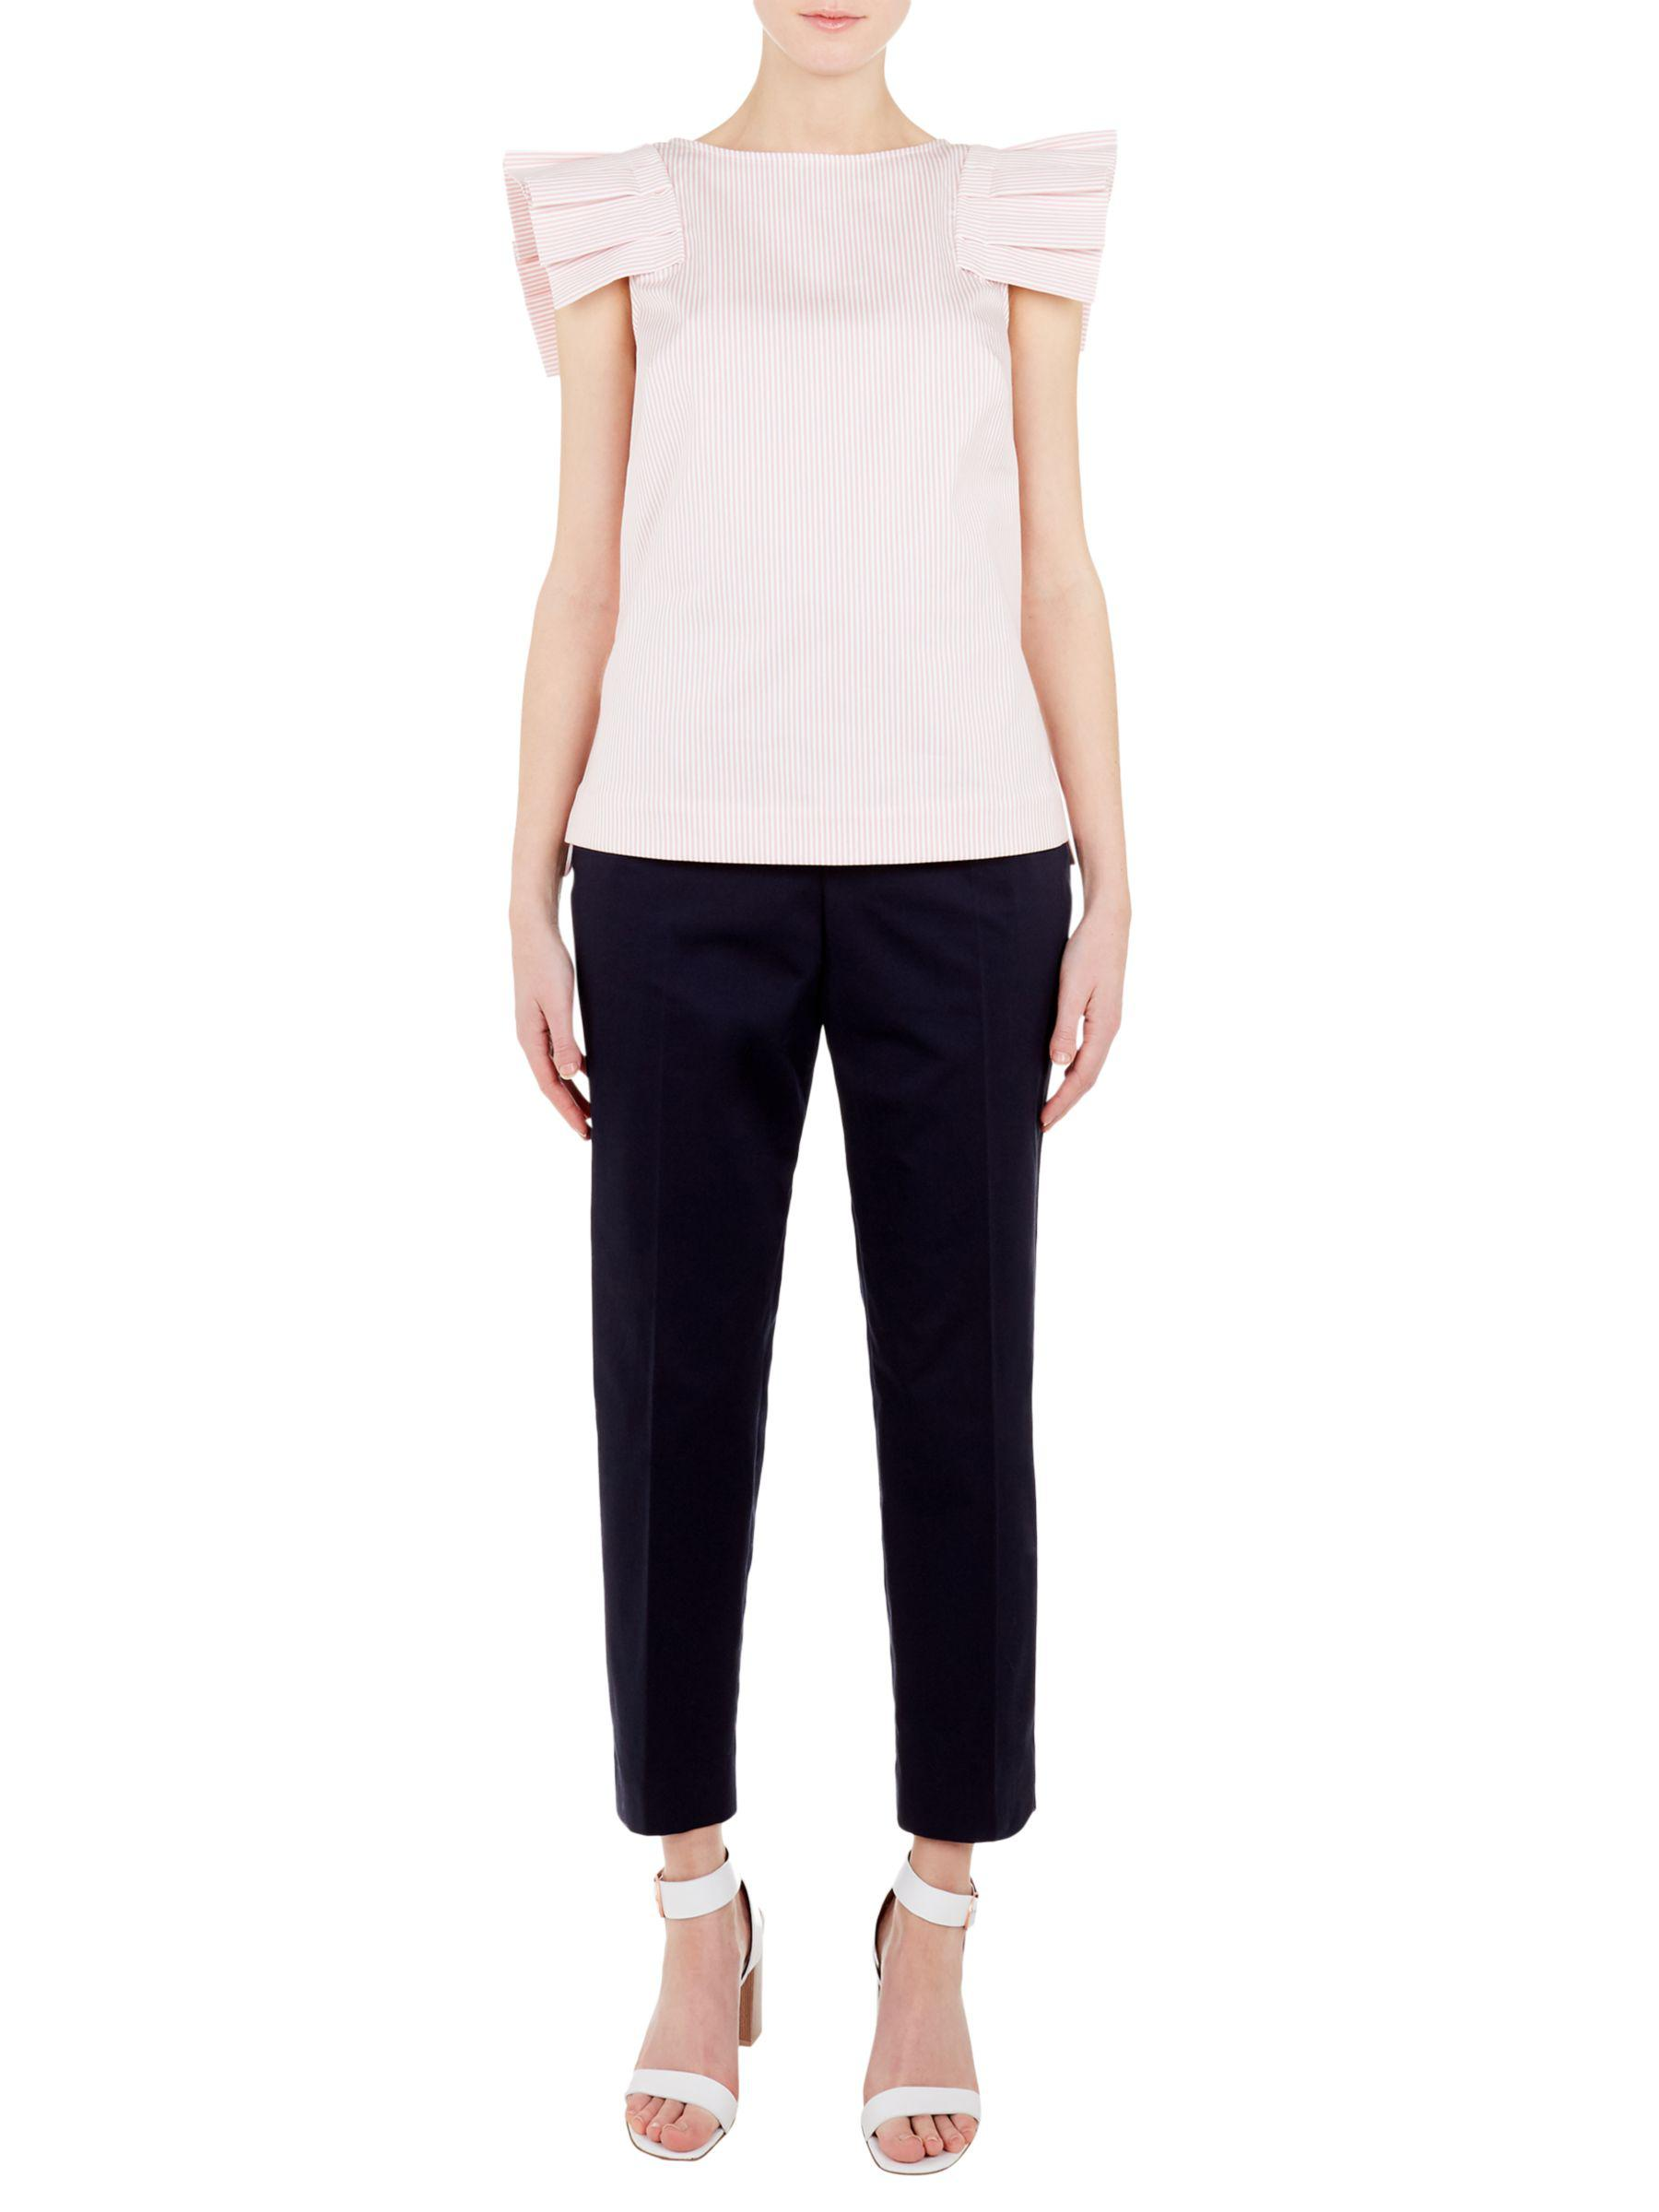 9d1dd6bcb10013 Ted Baker Frill Shoulder Top in Pink - Lyst